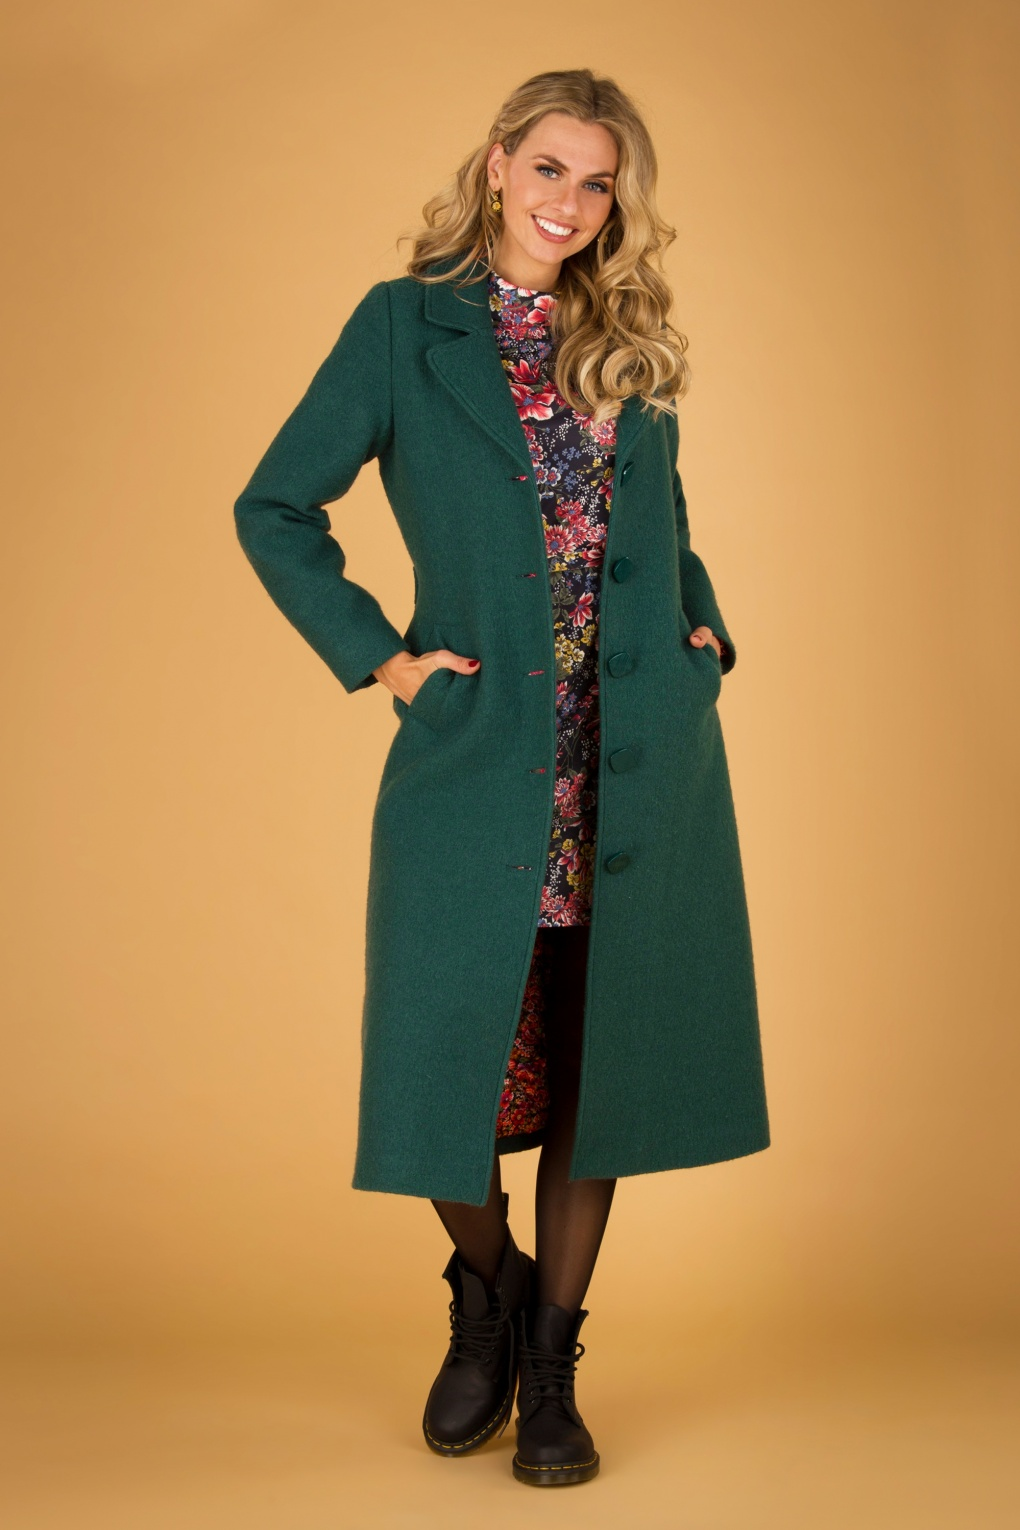 70s Clothes | Hippie Clothes & Outfits 70s Peyton Kennedy Wool Coat in Pine Green £162.43 AT vintagedancer.com